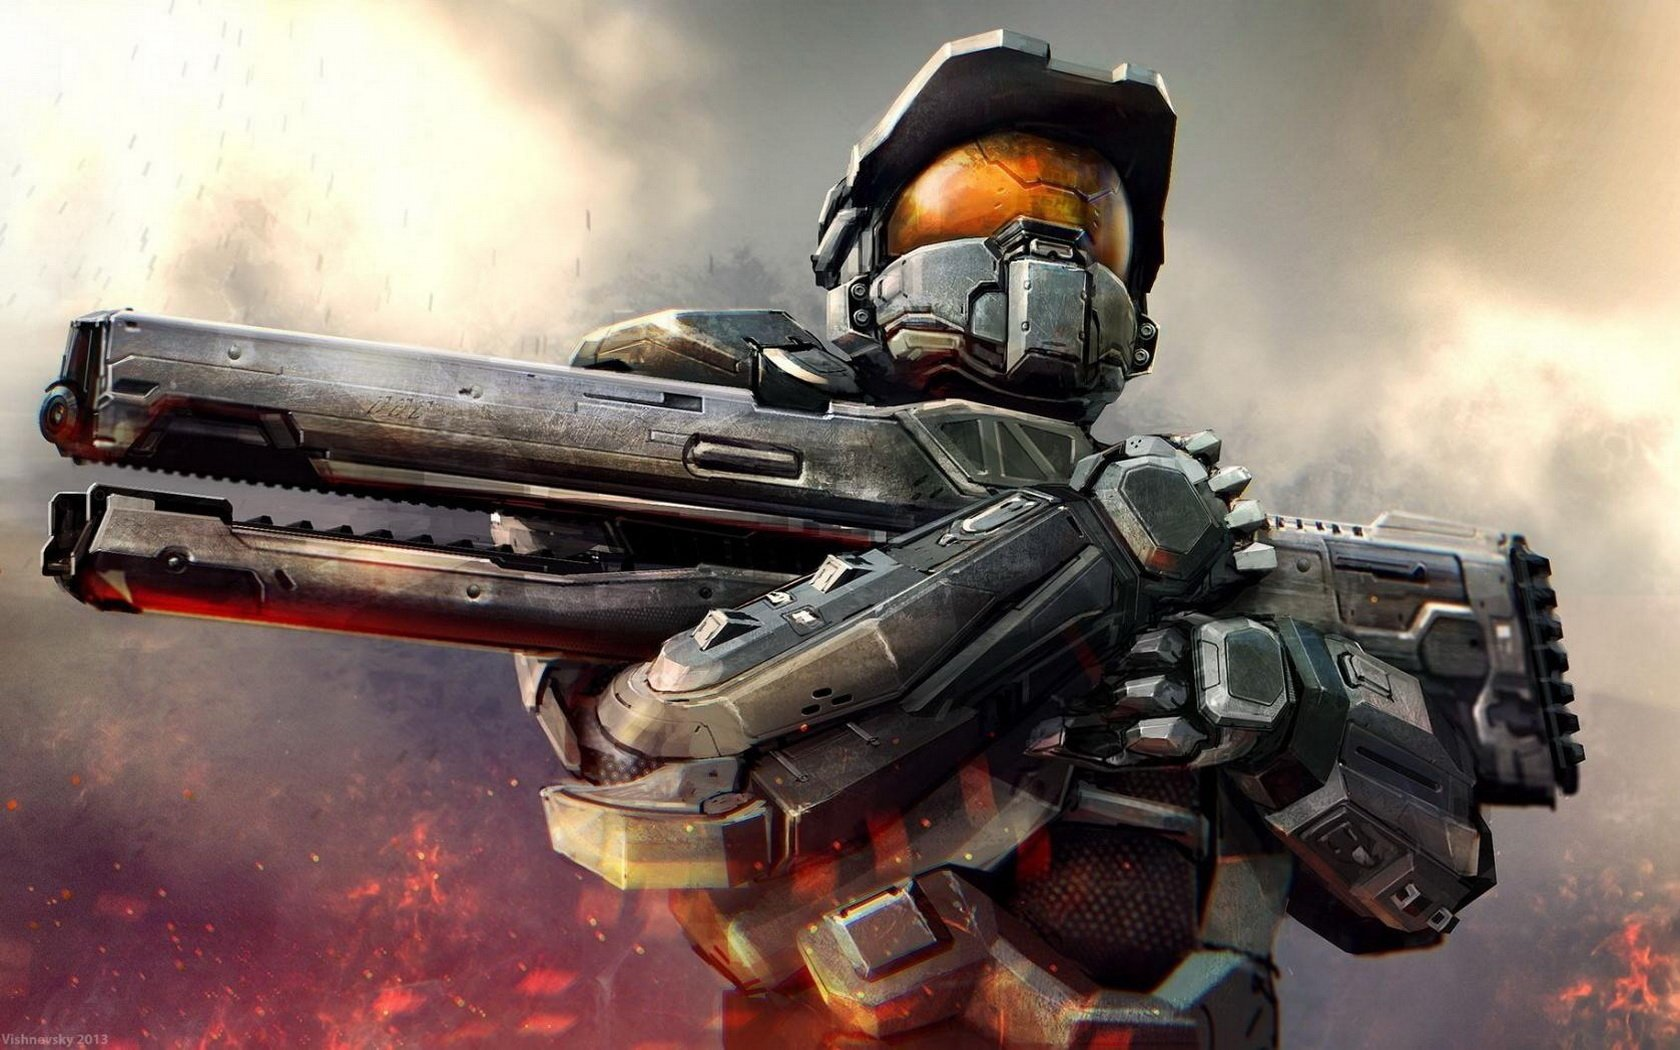 halo 3 matchmaking 2017 Halo mcc matchmaking update  2017 halo: the master standings 2016 rcl master chief collection s update releases yet, that has been plagued with issues in sweden.